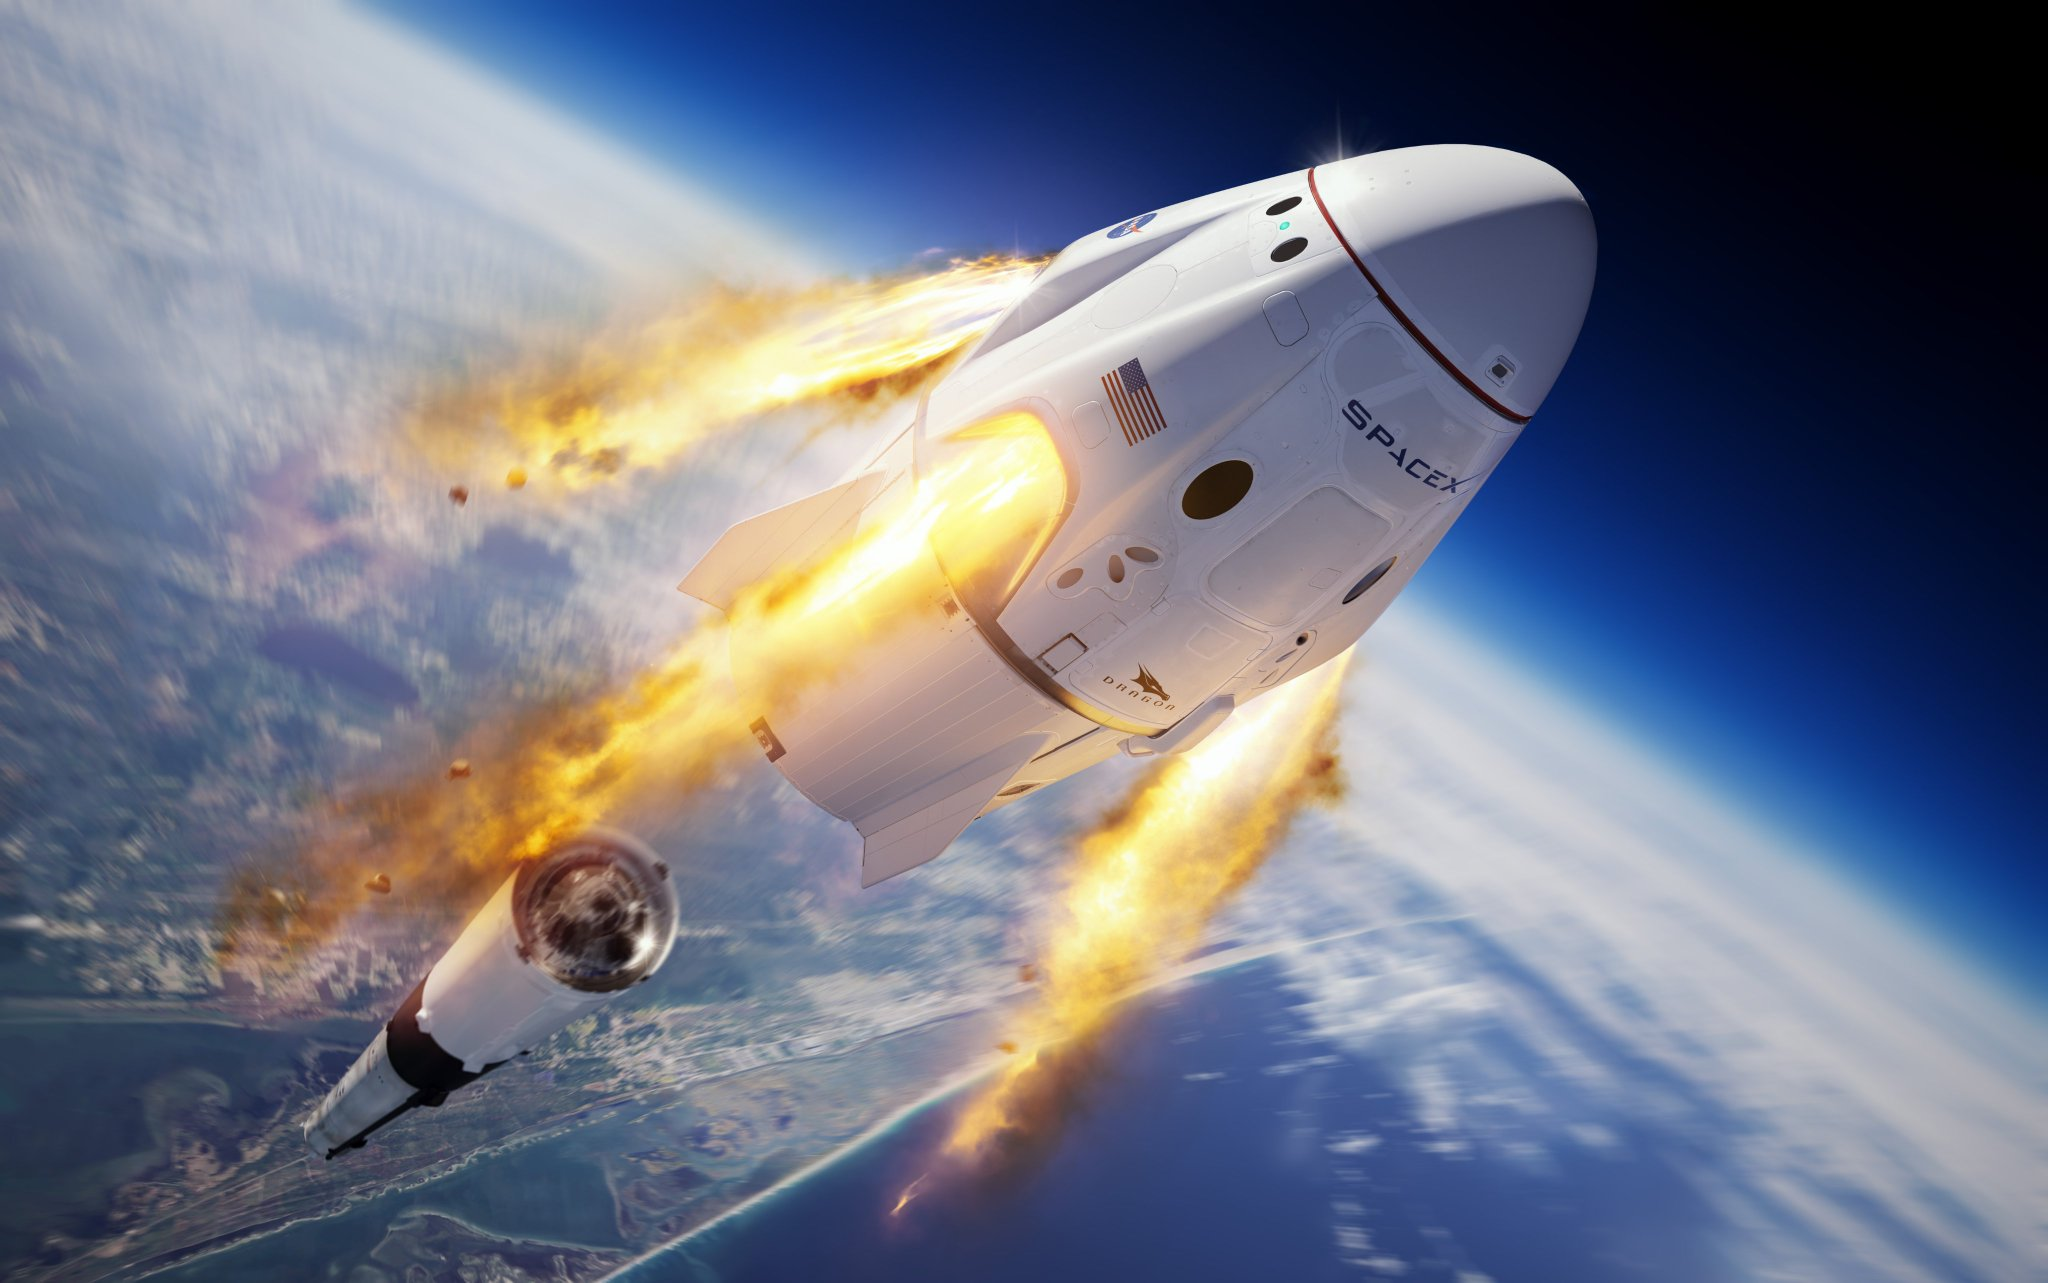 No in-flight abort for SpaceX's Crew Dragon spacecraft today